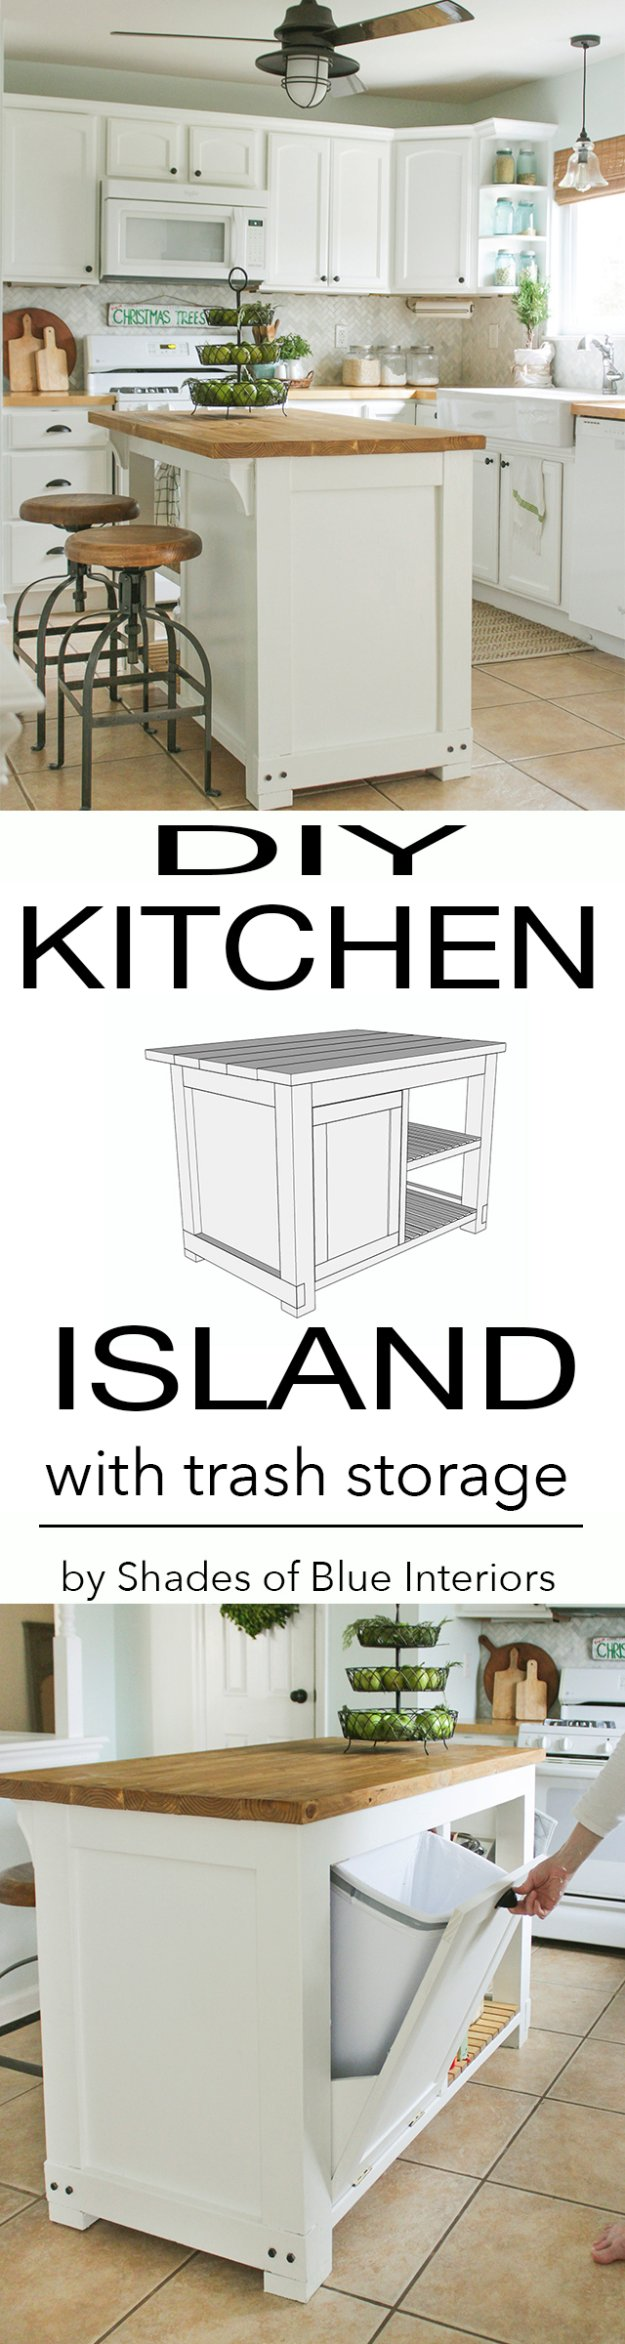 DIY Kitchen Decor Ideas - DIY Kitchen Island With Trash Storage - Creative Furniture Projects, Accessories, Countertop Ideas, Wall Art, Storage, Utensils, Towels and Rustic Furnishings #diyideas #kitchenideass